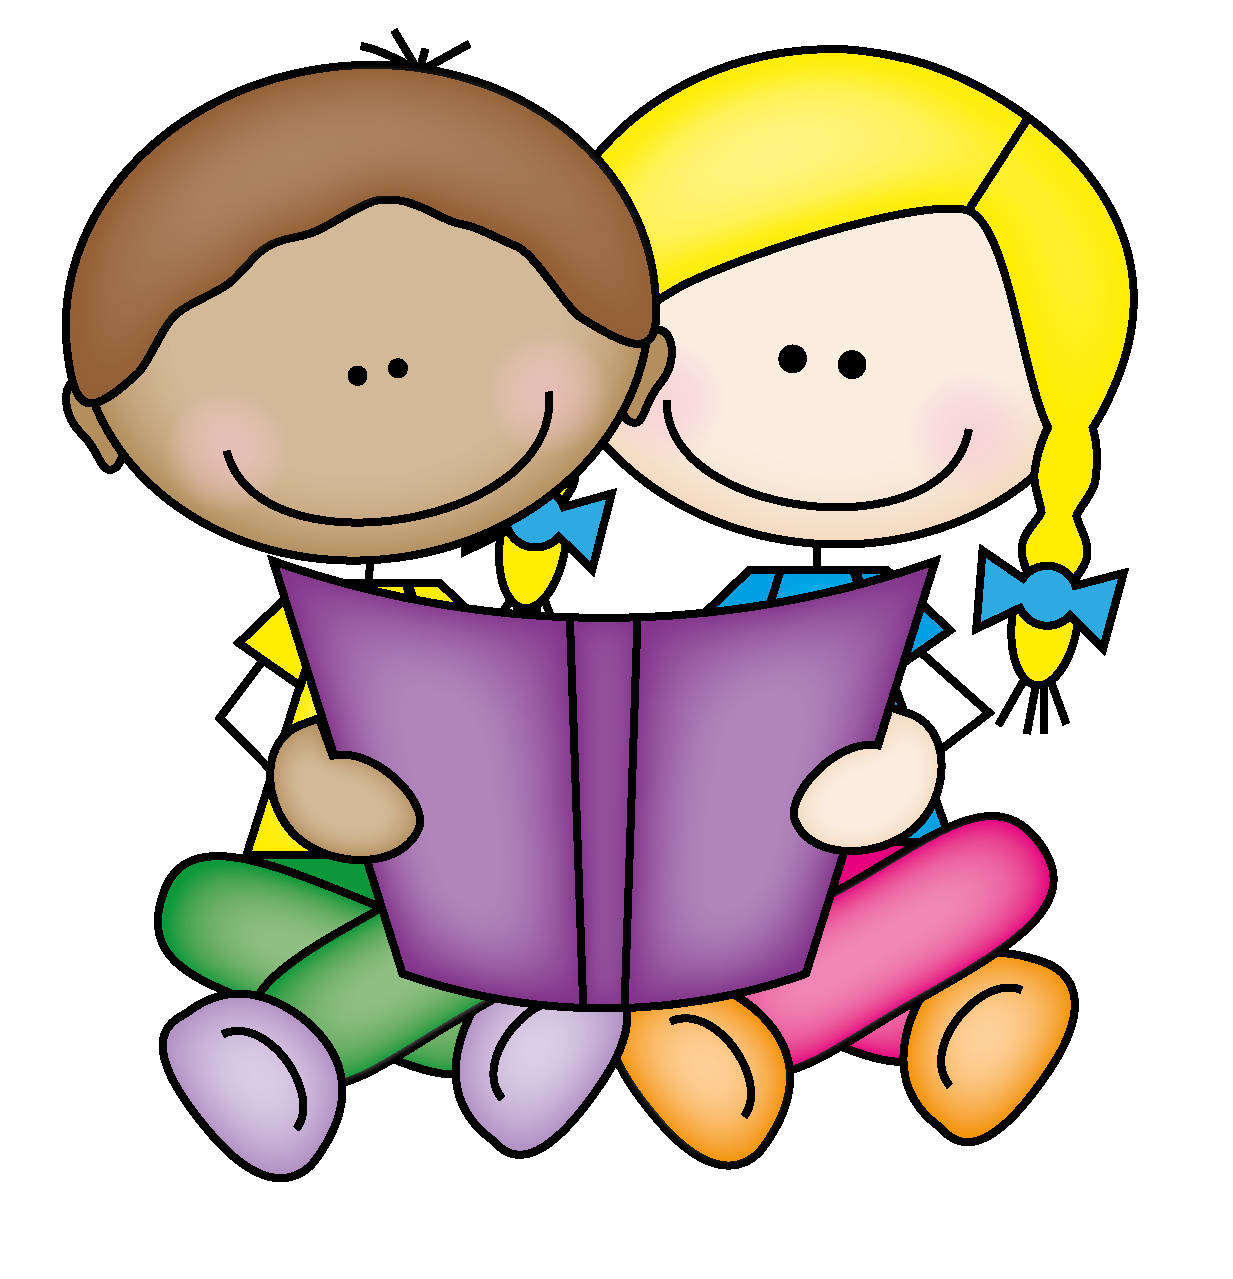 Sharing clipart. Free book buddies cliparts